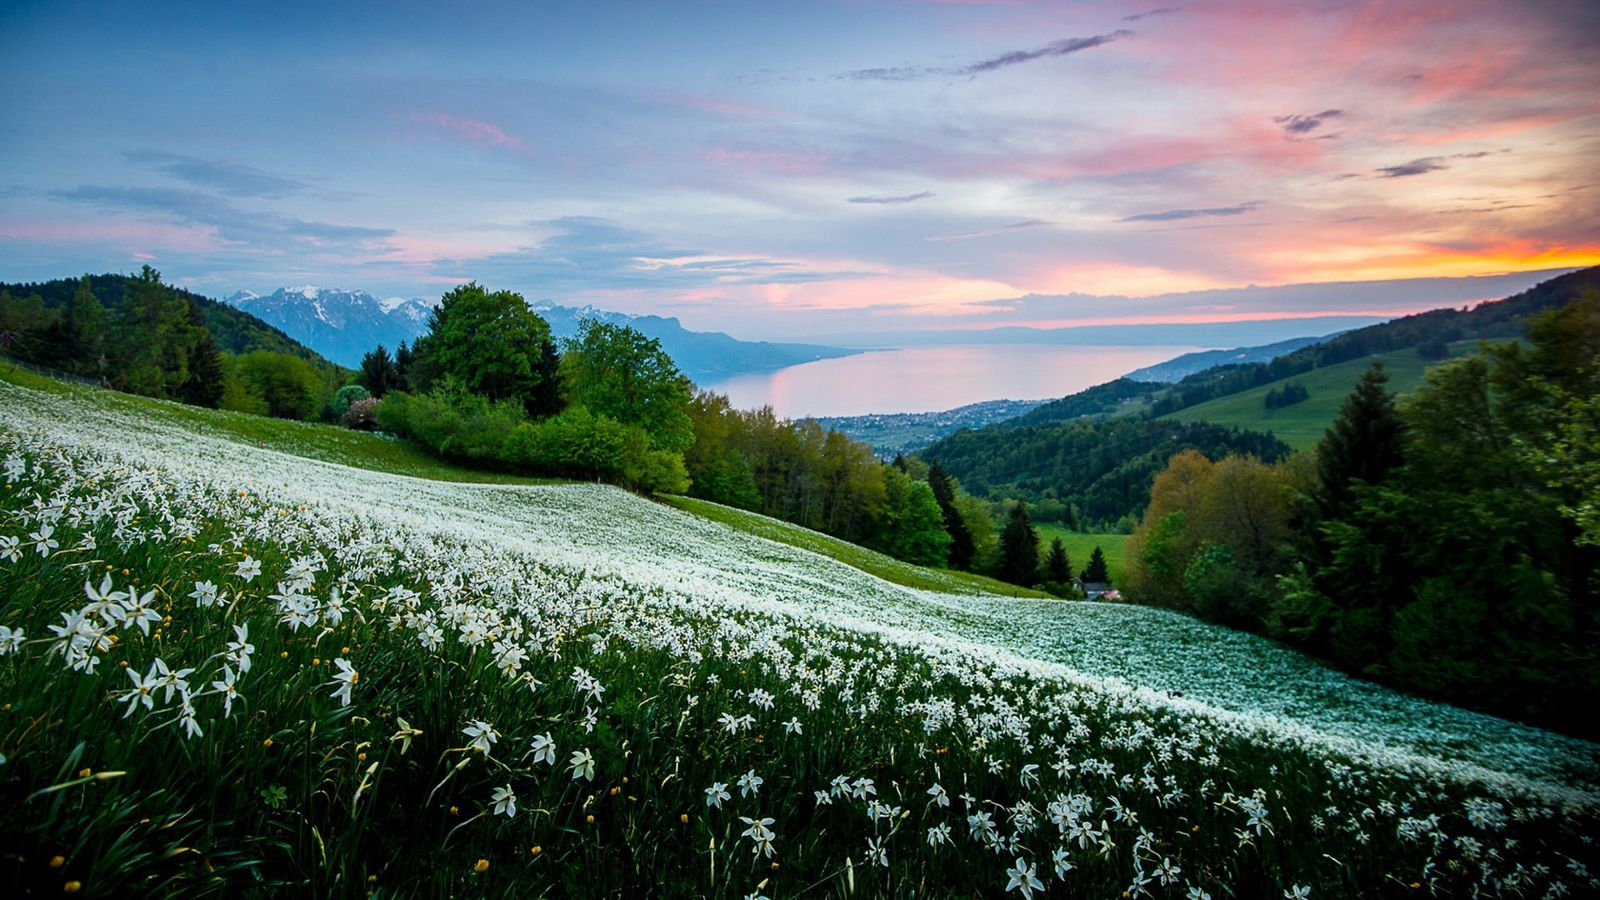 Nature Landscape Wallpapers - Top Free ...